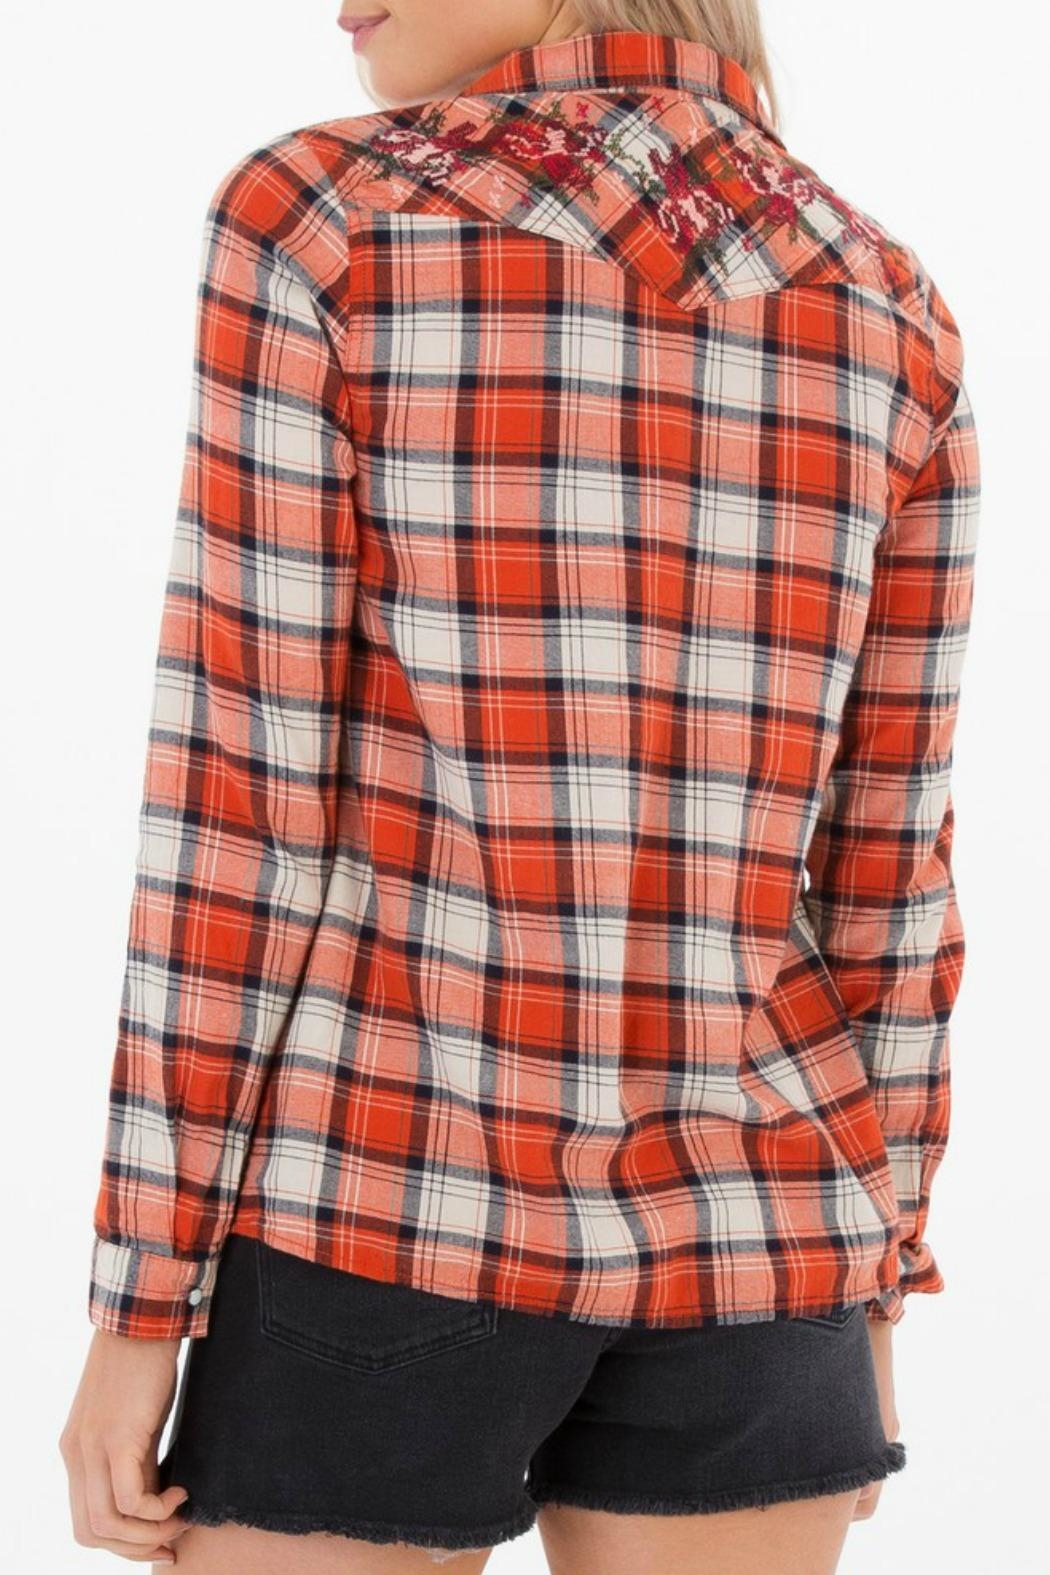 White Crow Embroidered Plaid Shirt - Front Full Image